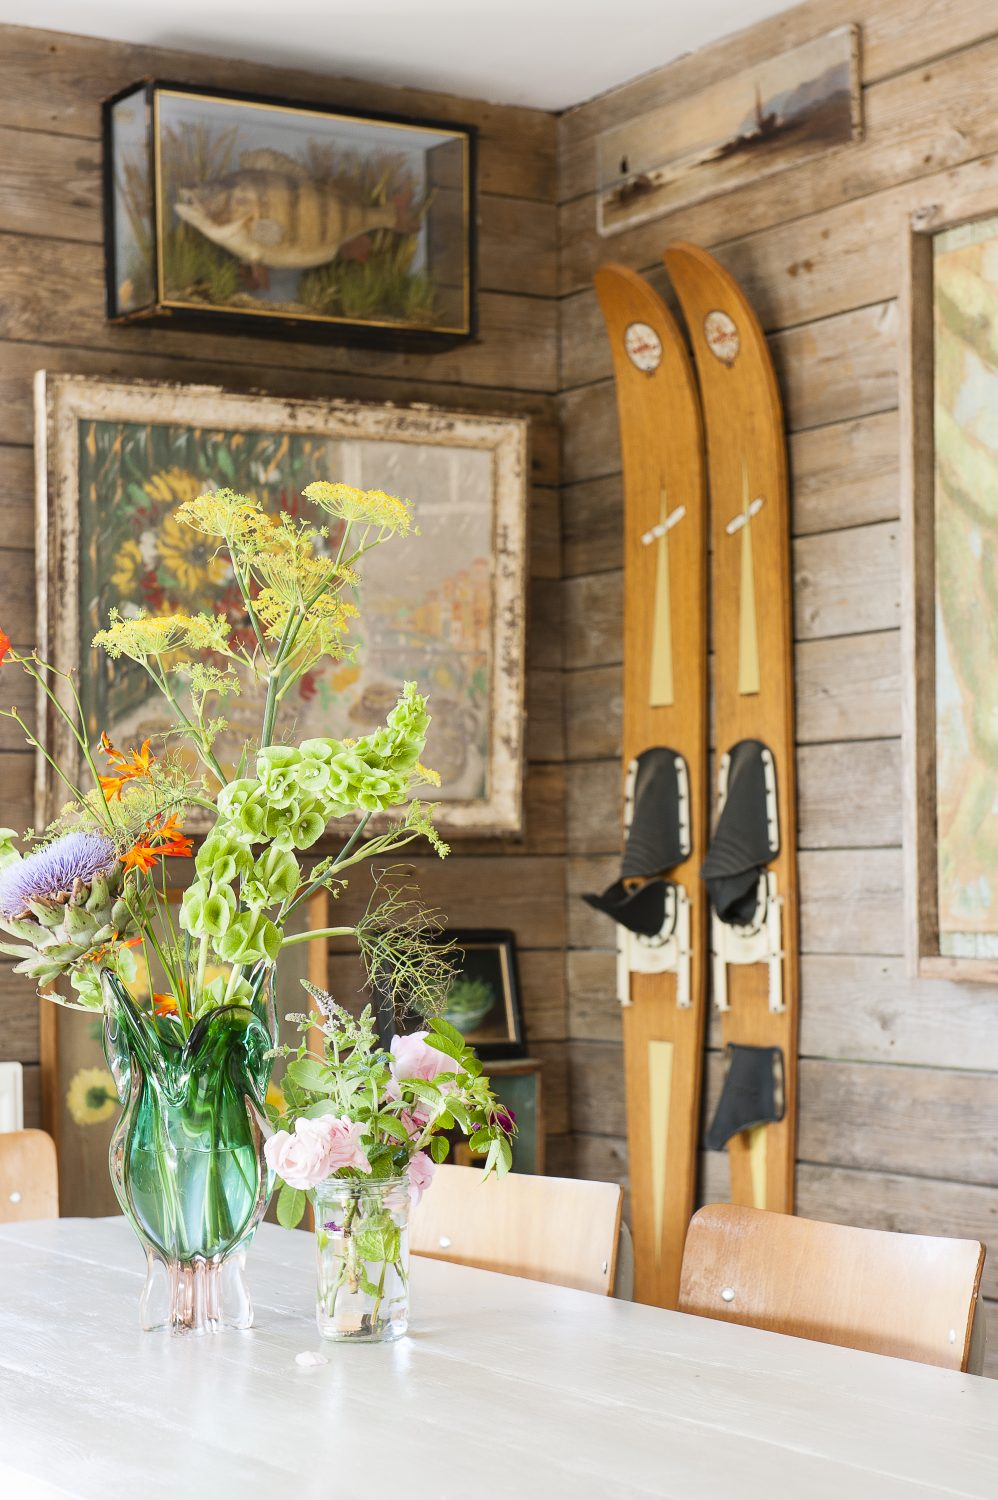 In contrast to the bedrooms, the dining room features cladding running horizontally rather than vertically along the internal walls. A life ring and vintage water skis allude to the property's river setting